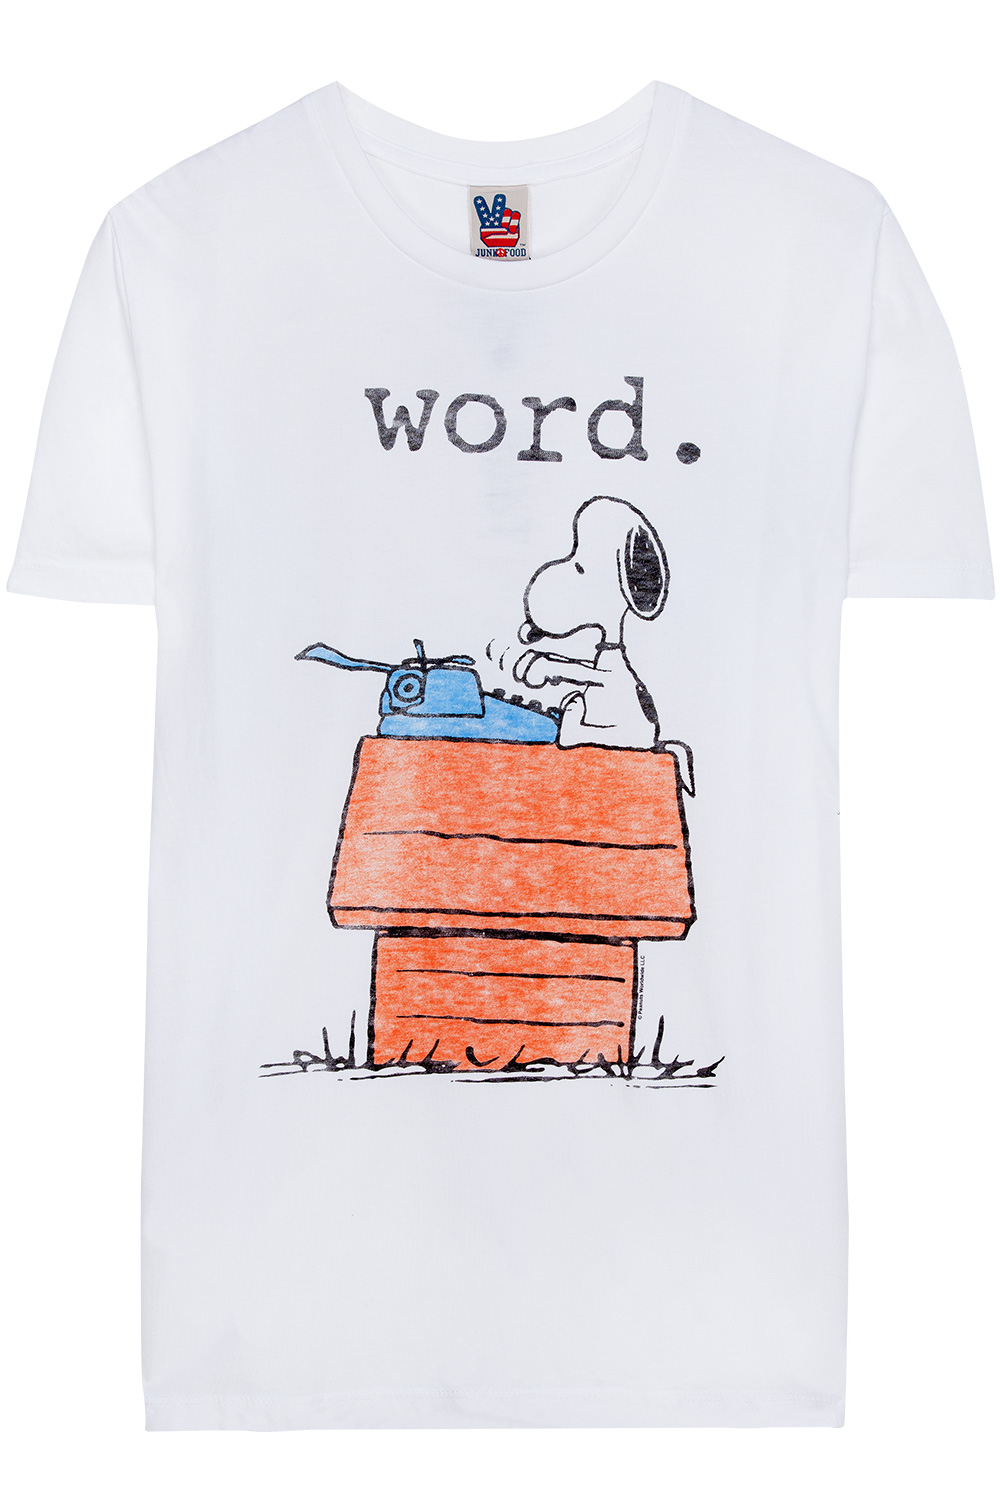 Junk Food Snoopy Word T-Shirt White | 365ist